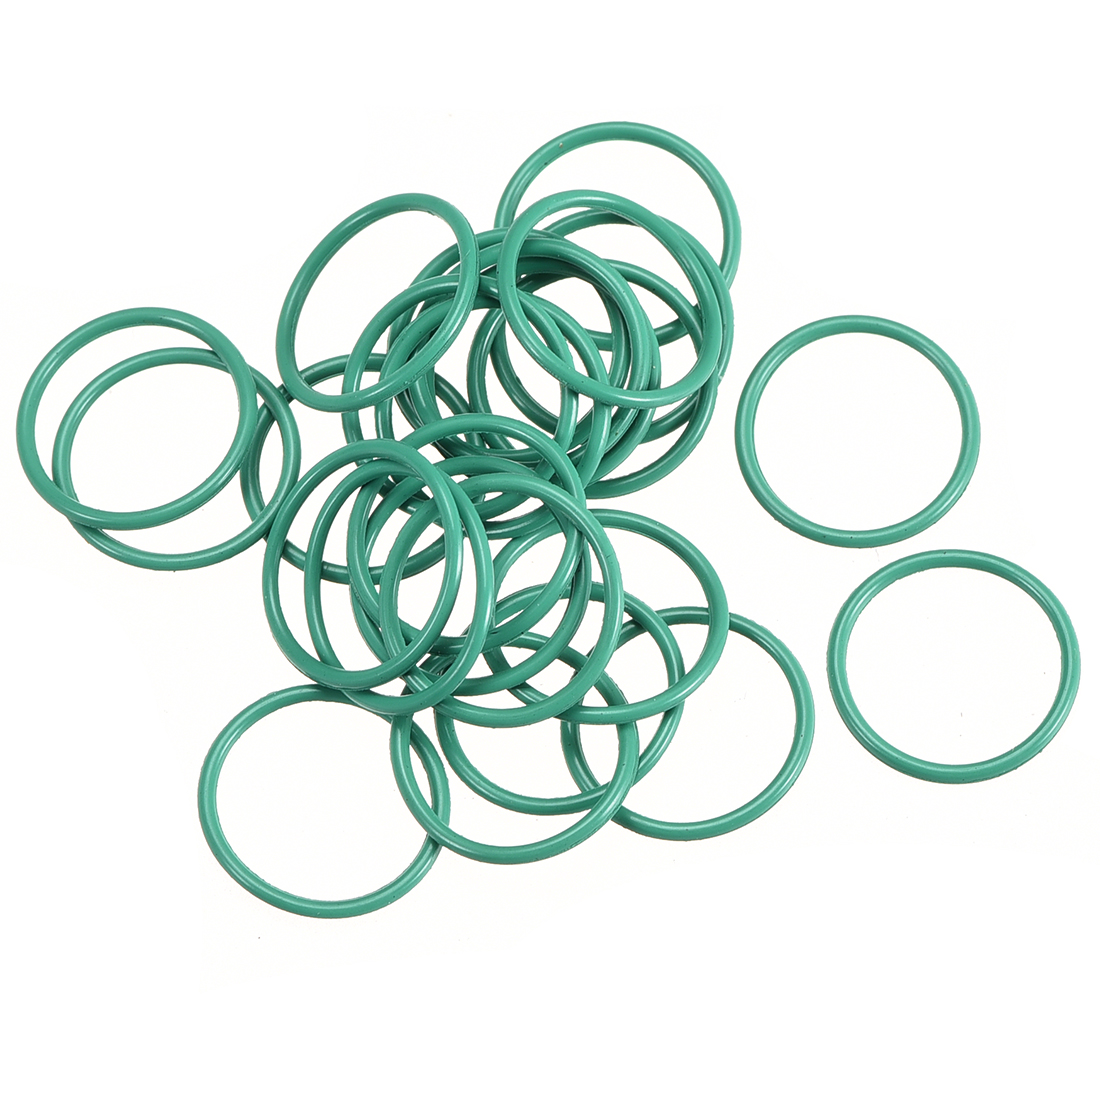 30pcs 13mm x 1mm Size Mechanical Rubber O Ring Oil Seal Gaskets Green